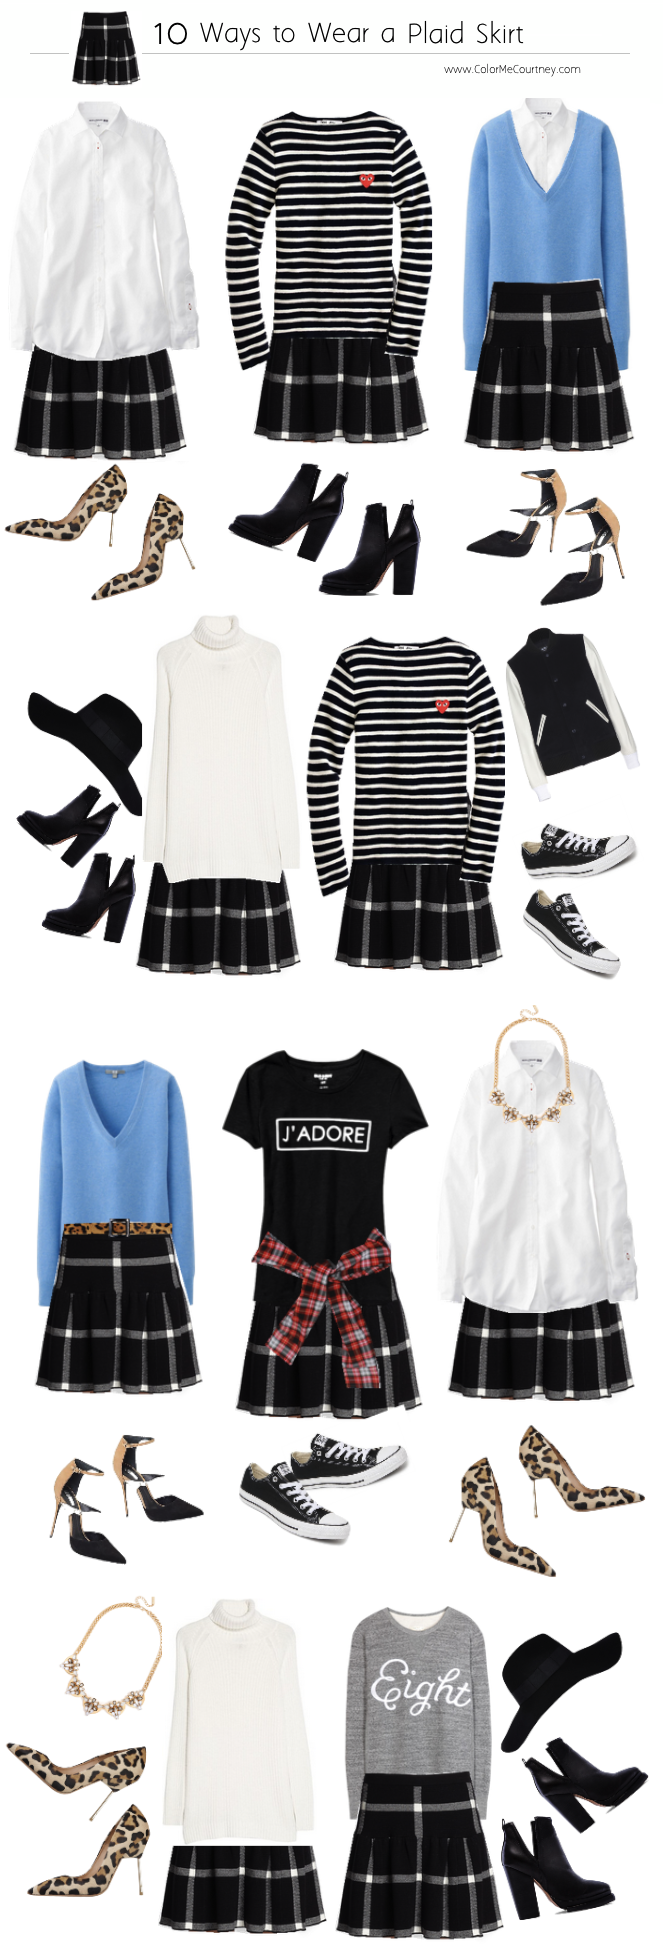 100 outfits create 100 outfits from 10 pieces 10 pieces 100 outfits what to wear for fall fall style guide fall shopping guide what to buy fro fall fall fashion fall fashion guide how to dress for fall what to wear for fall fall fashion guide how to wear a plaid mini skirt 10 ways to wear a plaid mini skirt